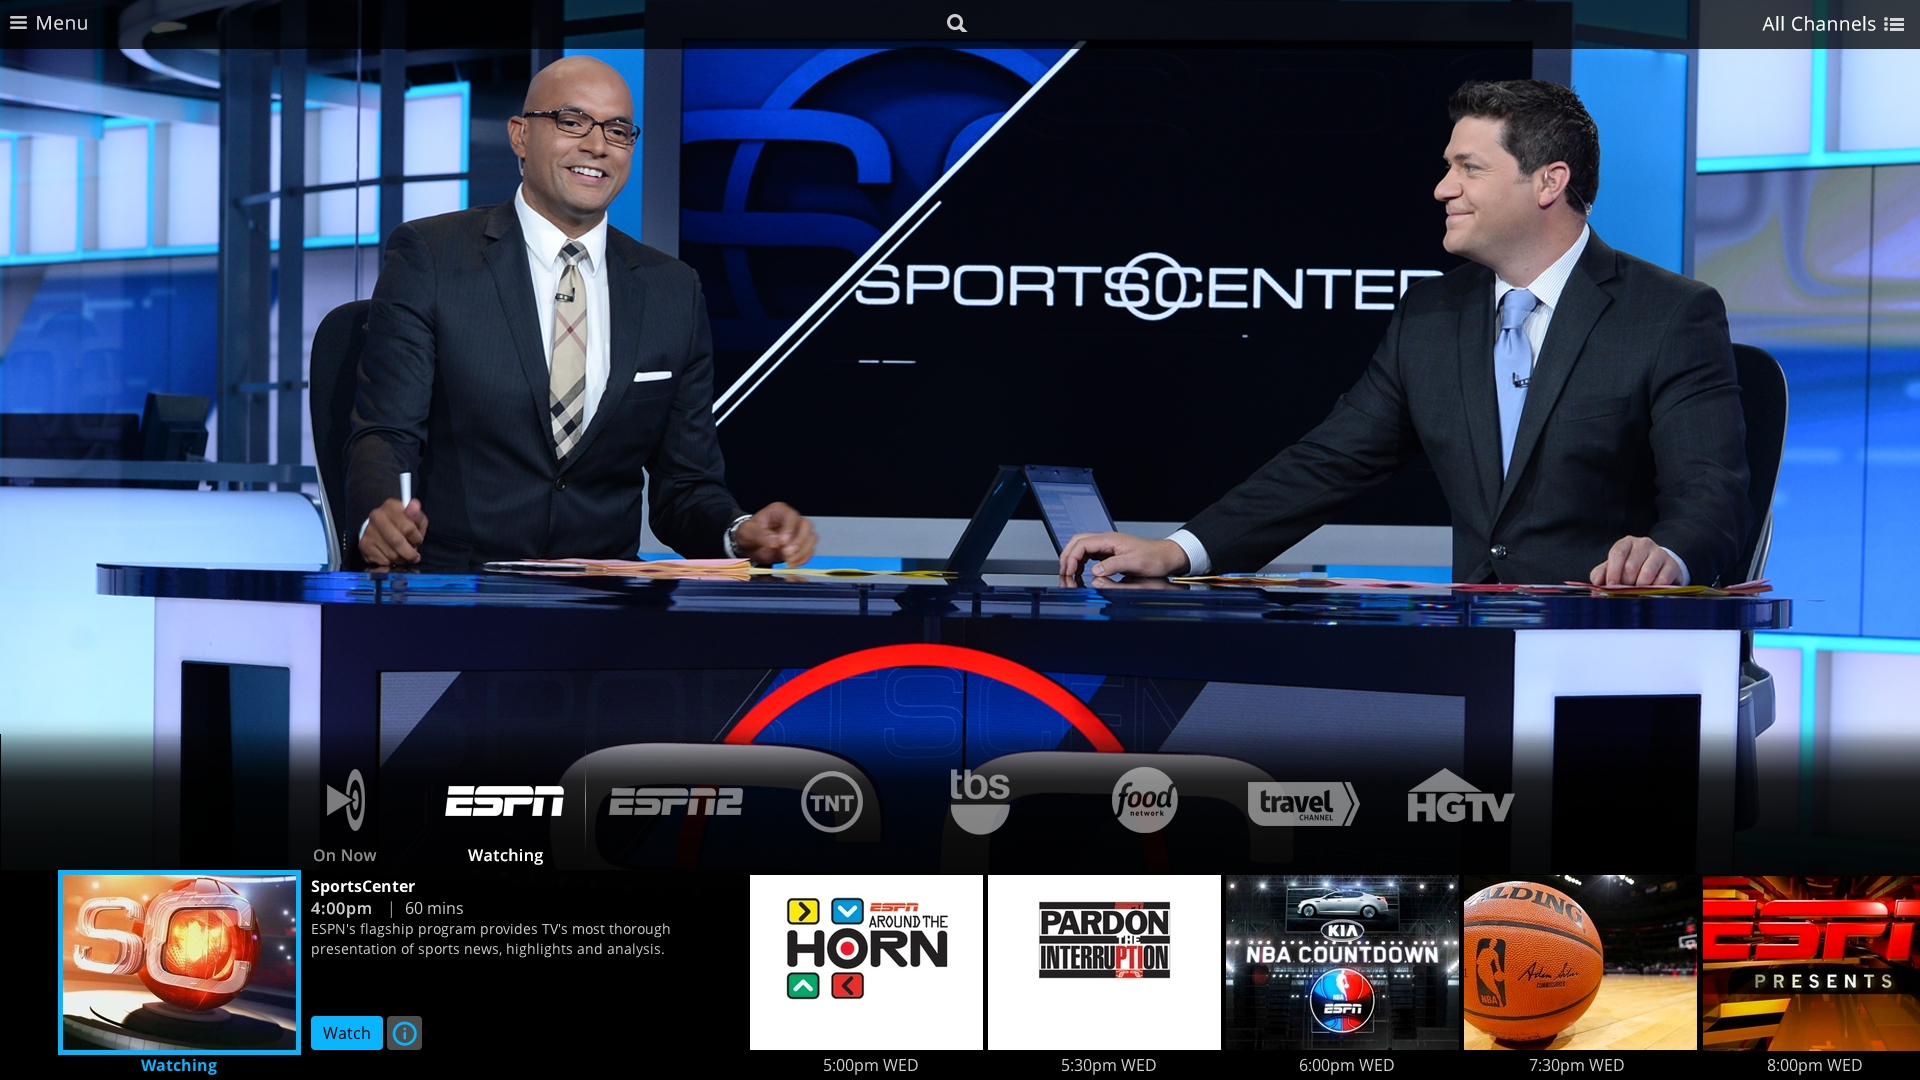 Sling TV Takes Home Top Honors at the 2015 International CES Wins